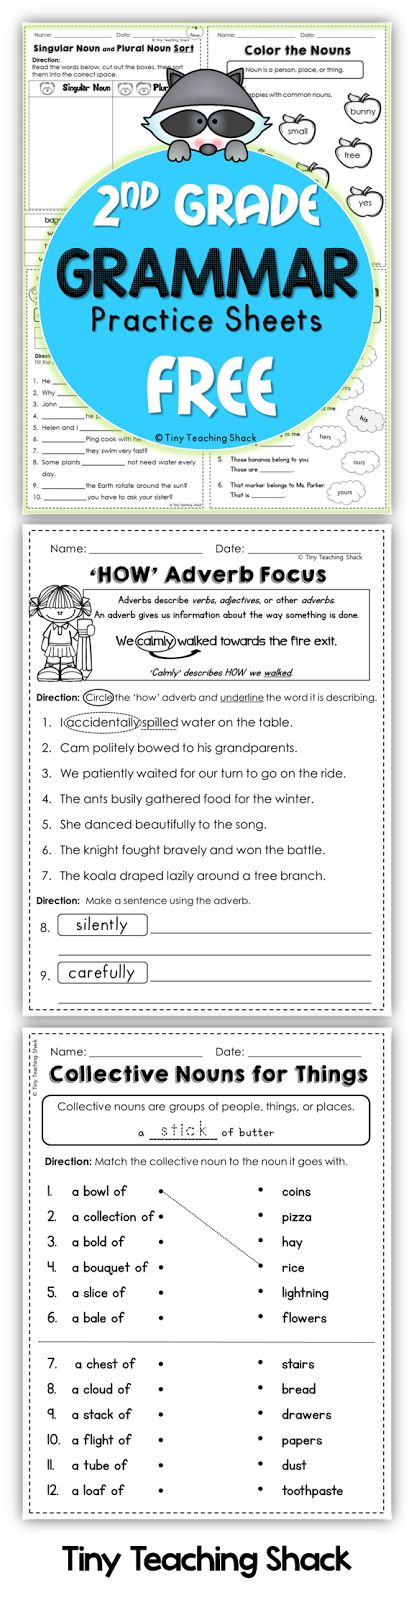 Second Grade Grammar Practice Sheets